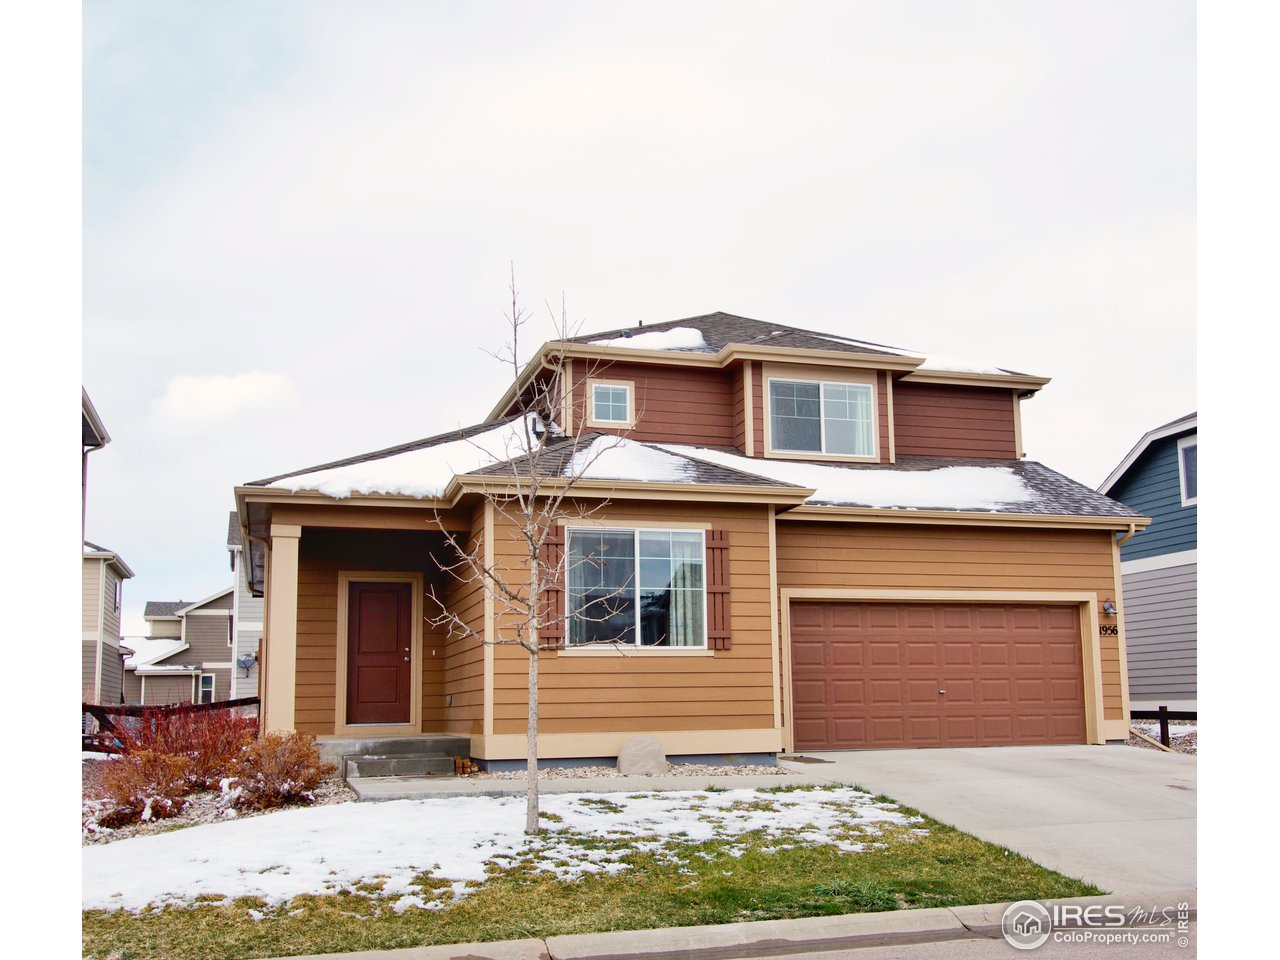 1956 Mackinac St, Fort Collins CO 80524